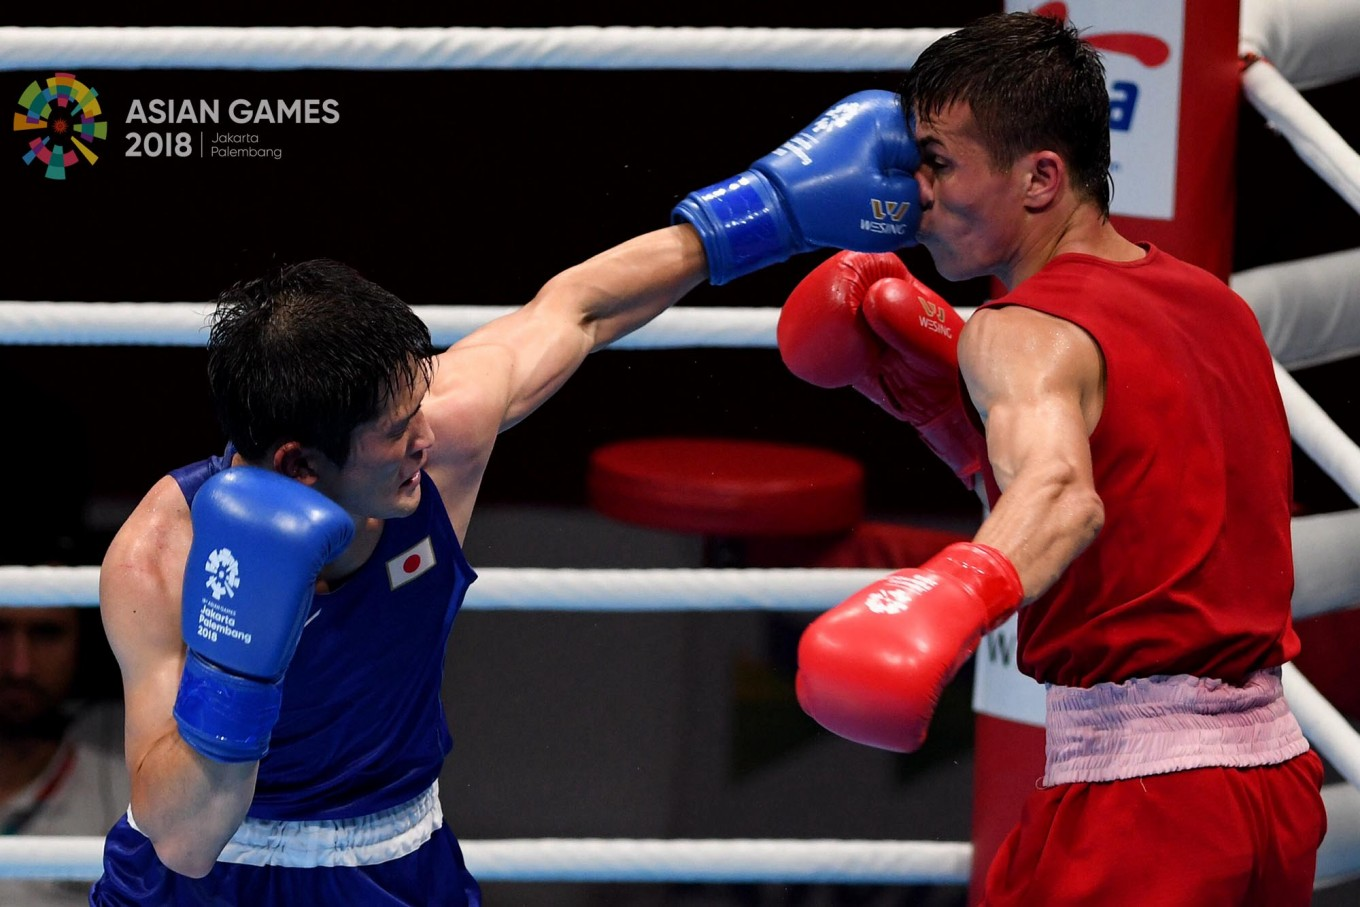 Japanese boxer Arashi Morisaka (left) attacks Hursand Imankuliyev of Turkmenistan in a men's 60-kilogram match at the 2018 Asian Games at the Jakarta International Expo in Kemayoran, Central Jakarta, on Friday, August. 24. Inasgoc via Antara/Wendra Ajistyatama